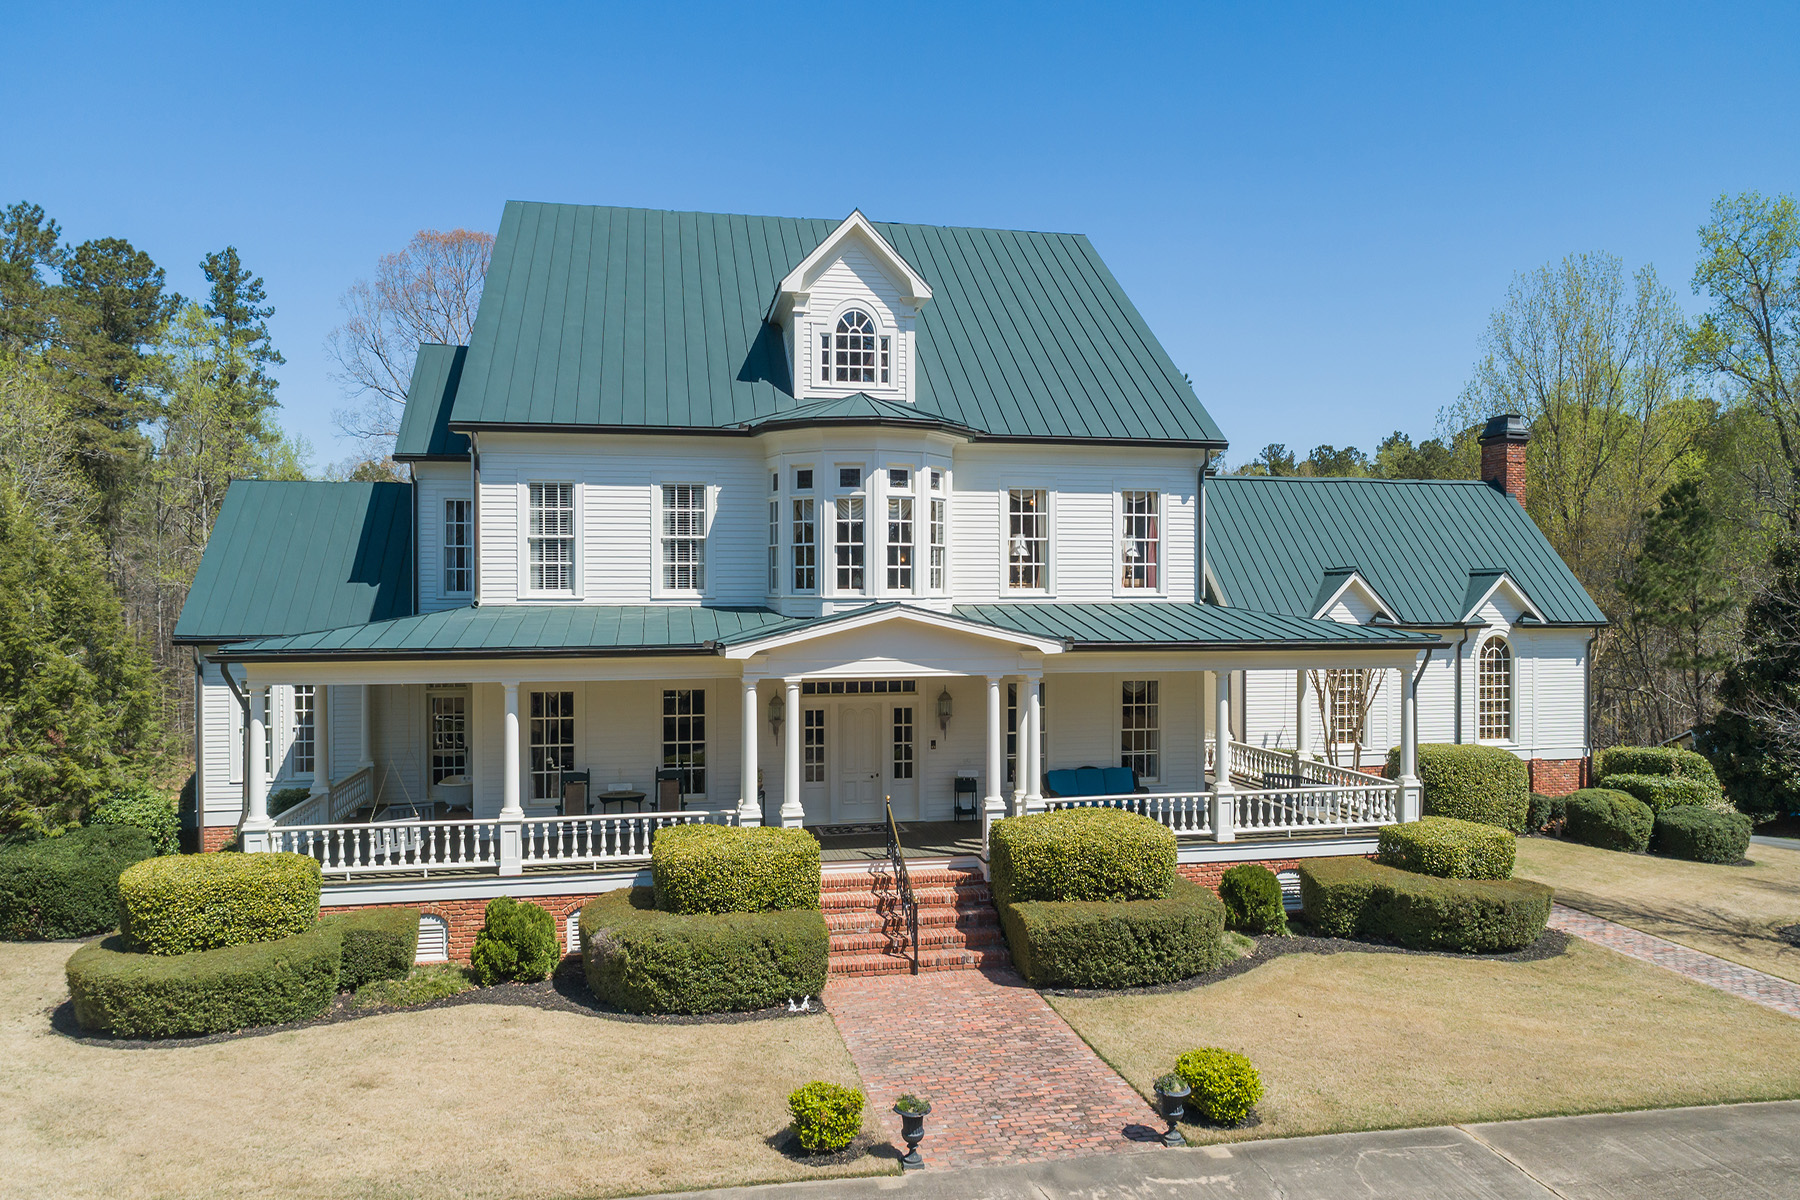 Single Family Homes for Active at One-of-a-Kind Estate on 18 Acres in West Cobb 1574 Bullard Road Powder Springs, Georgia 30127 United States